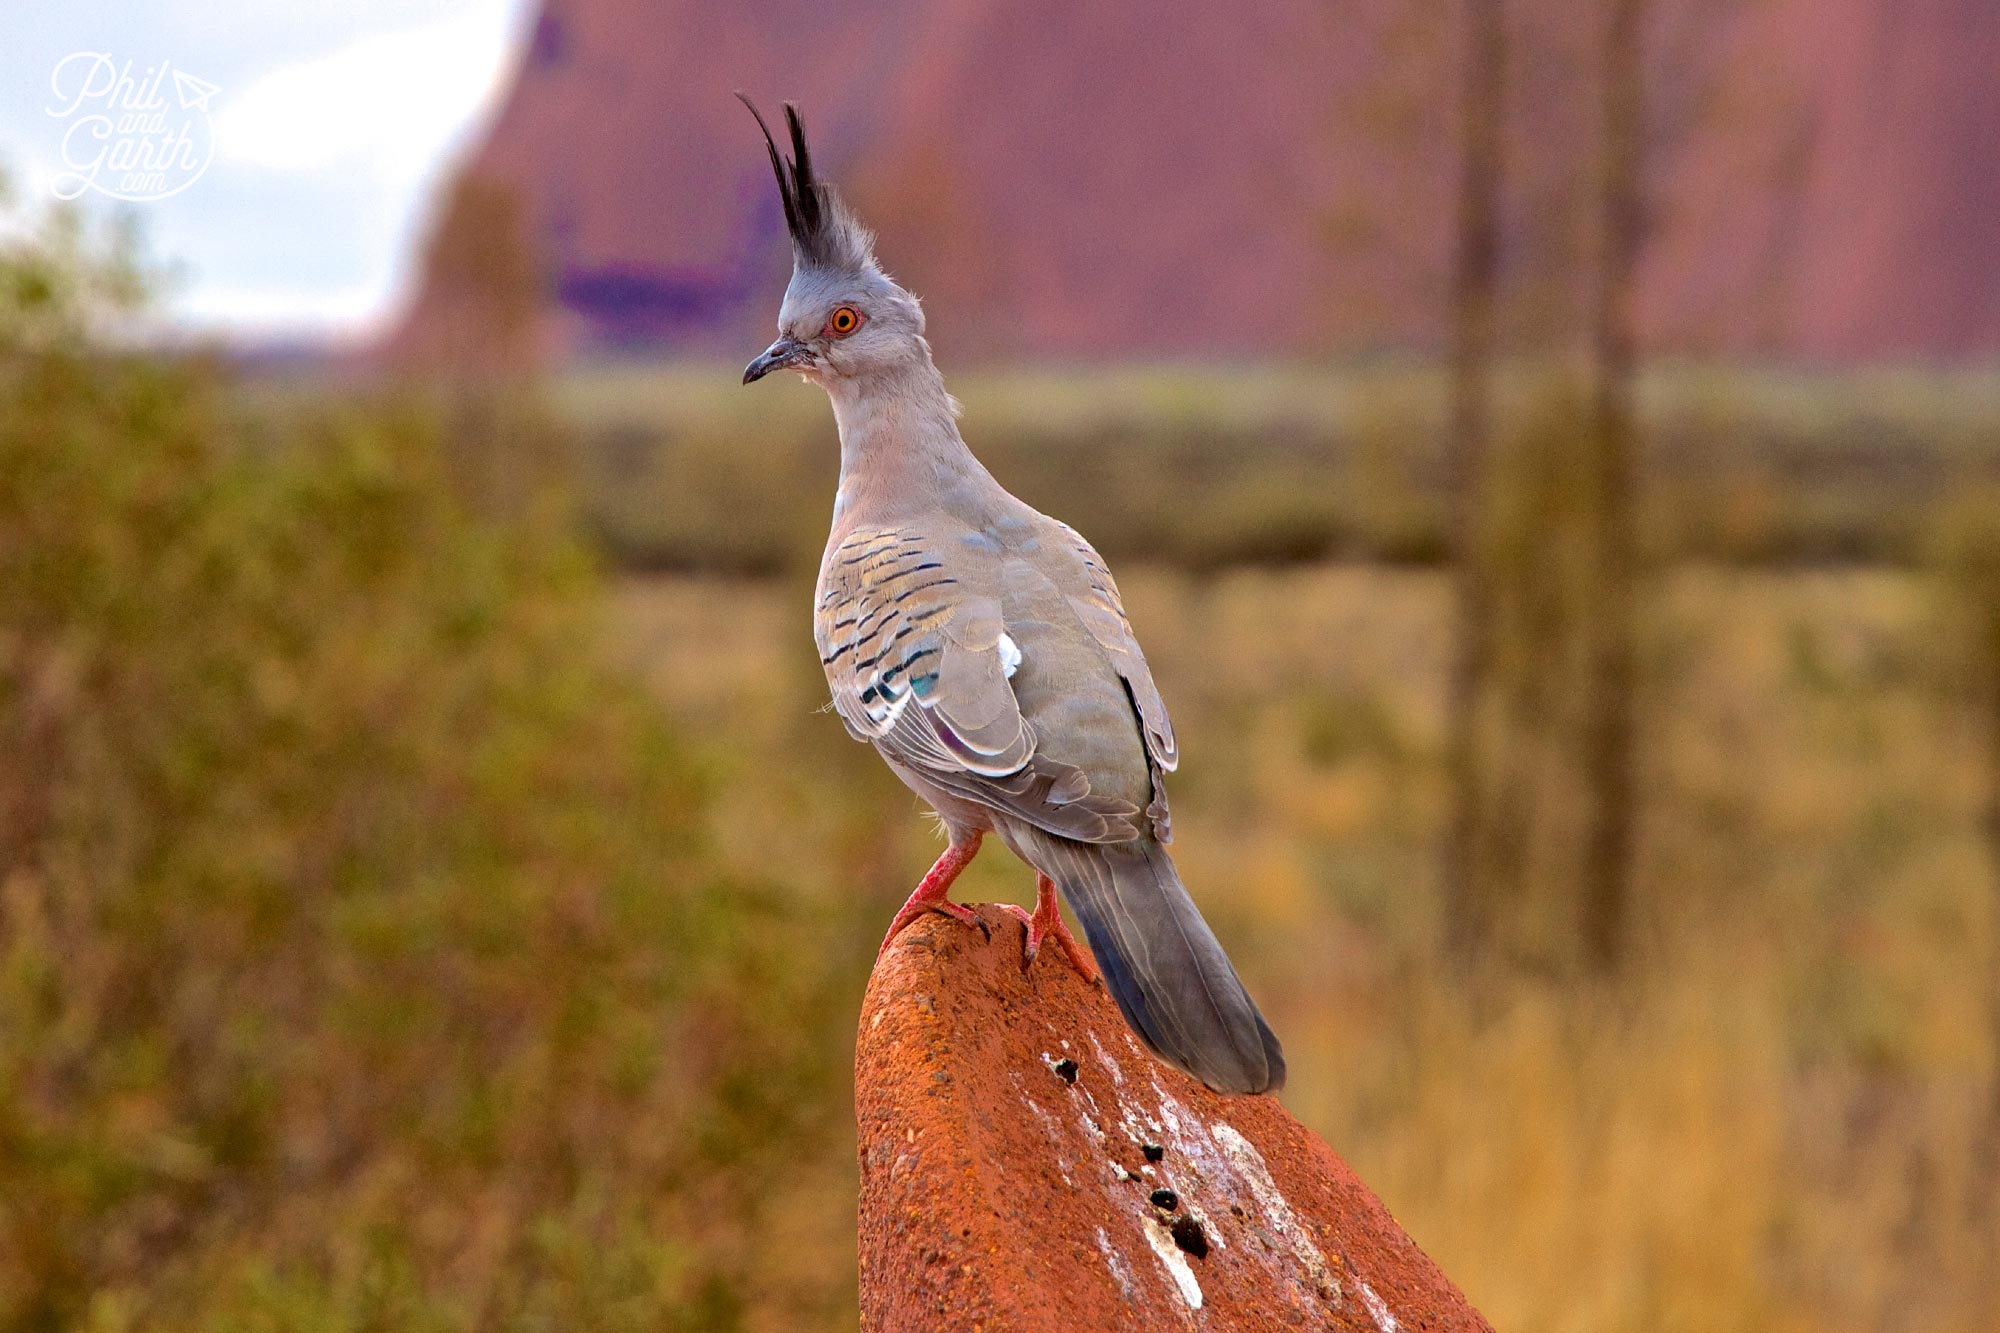 There's lots of wildlife at Uluru, we saw lizards and this crested pigeon